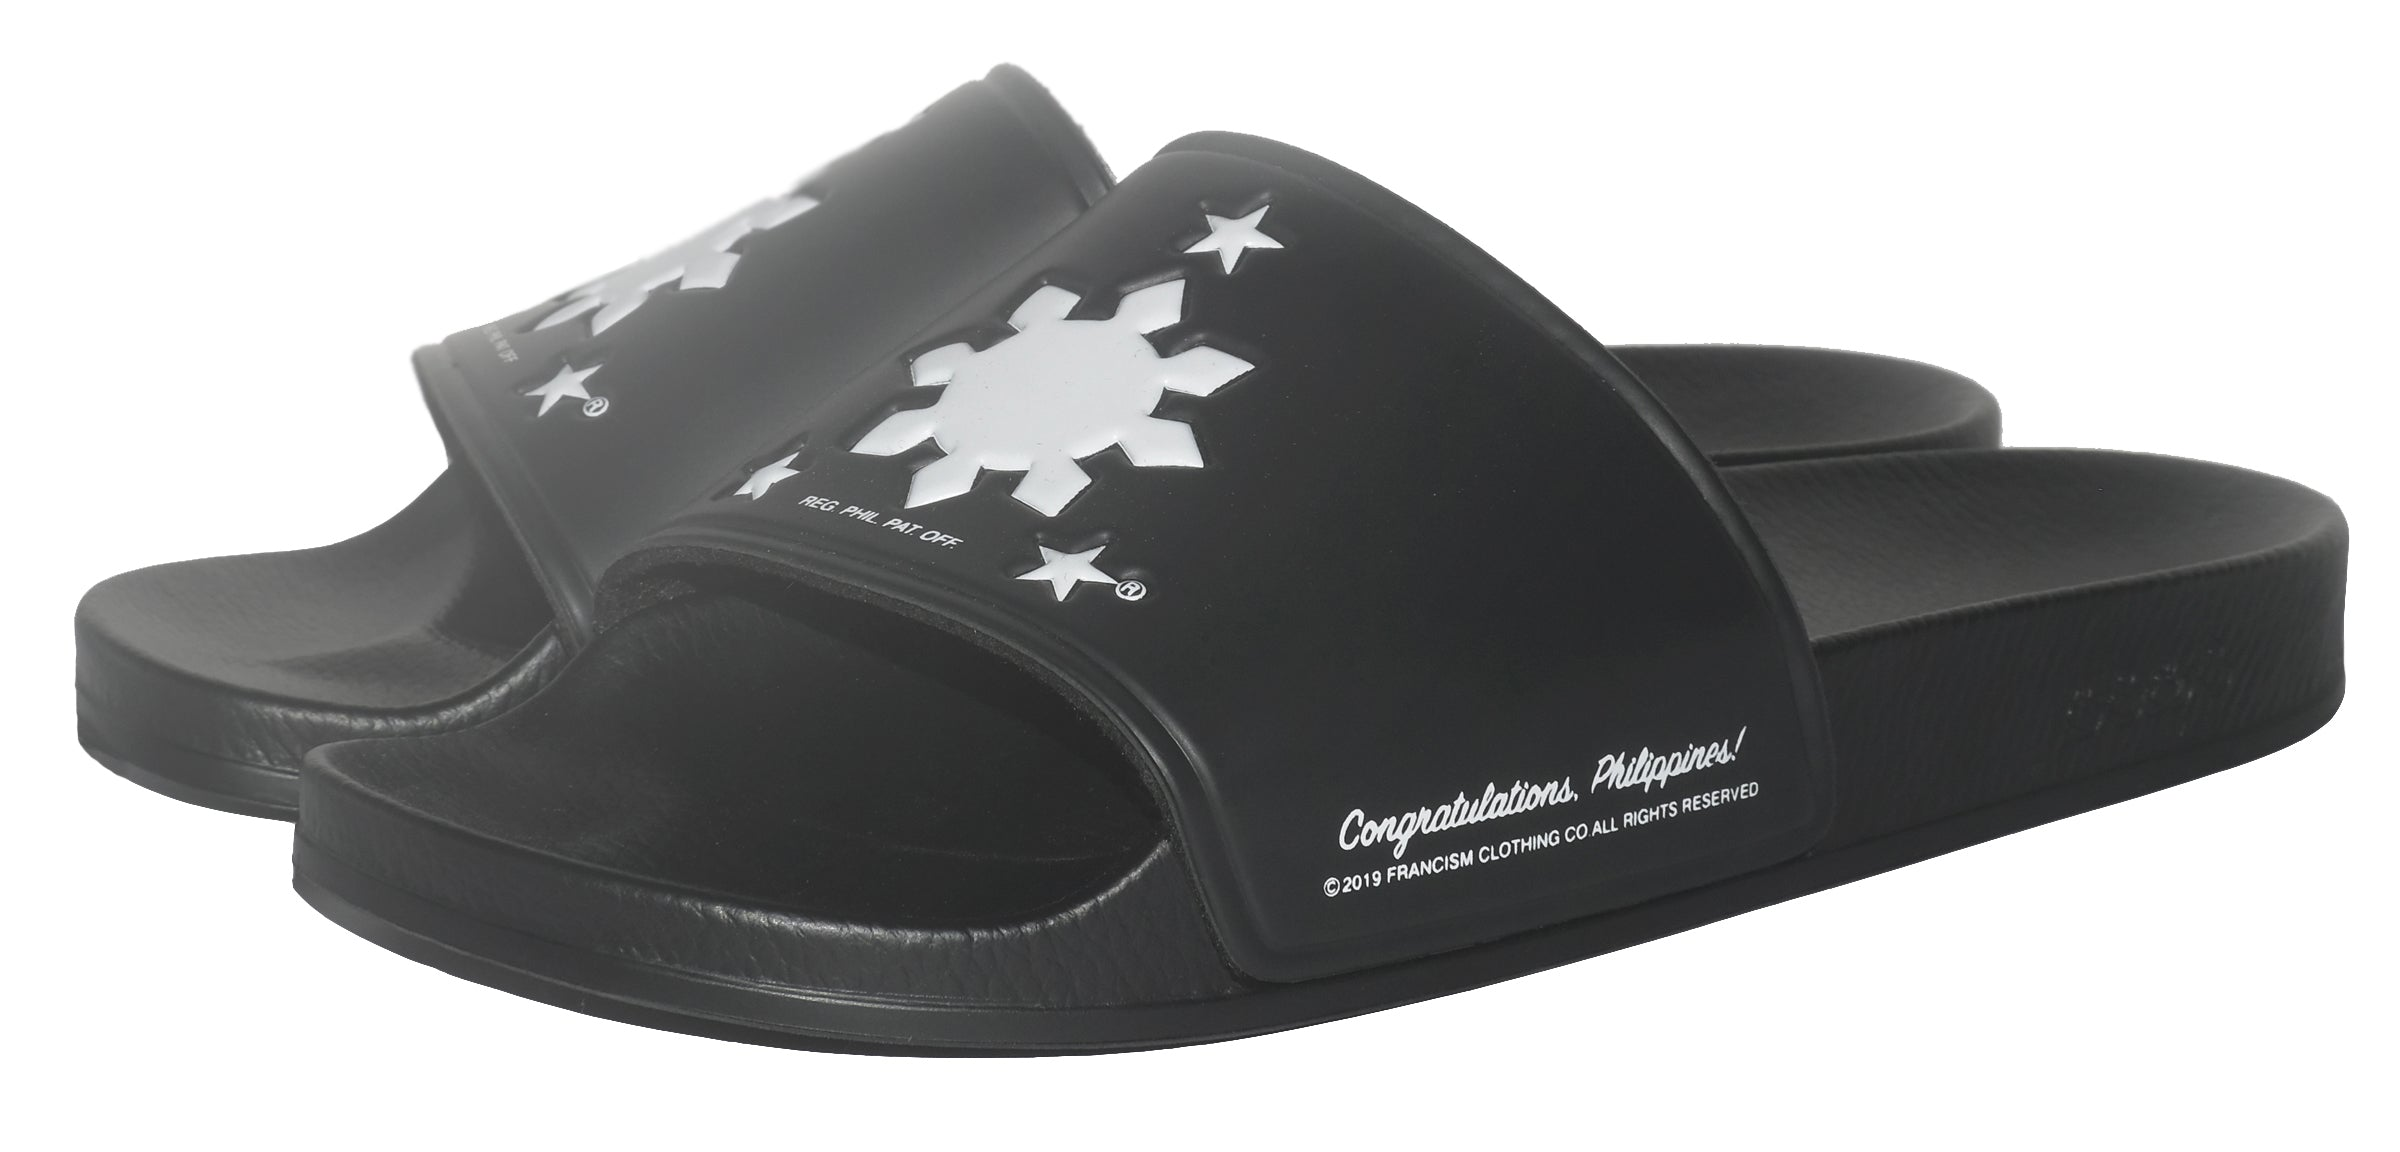 CONGRATULATIONS PHILIPPINES POOL SLIDES - BLACK